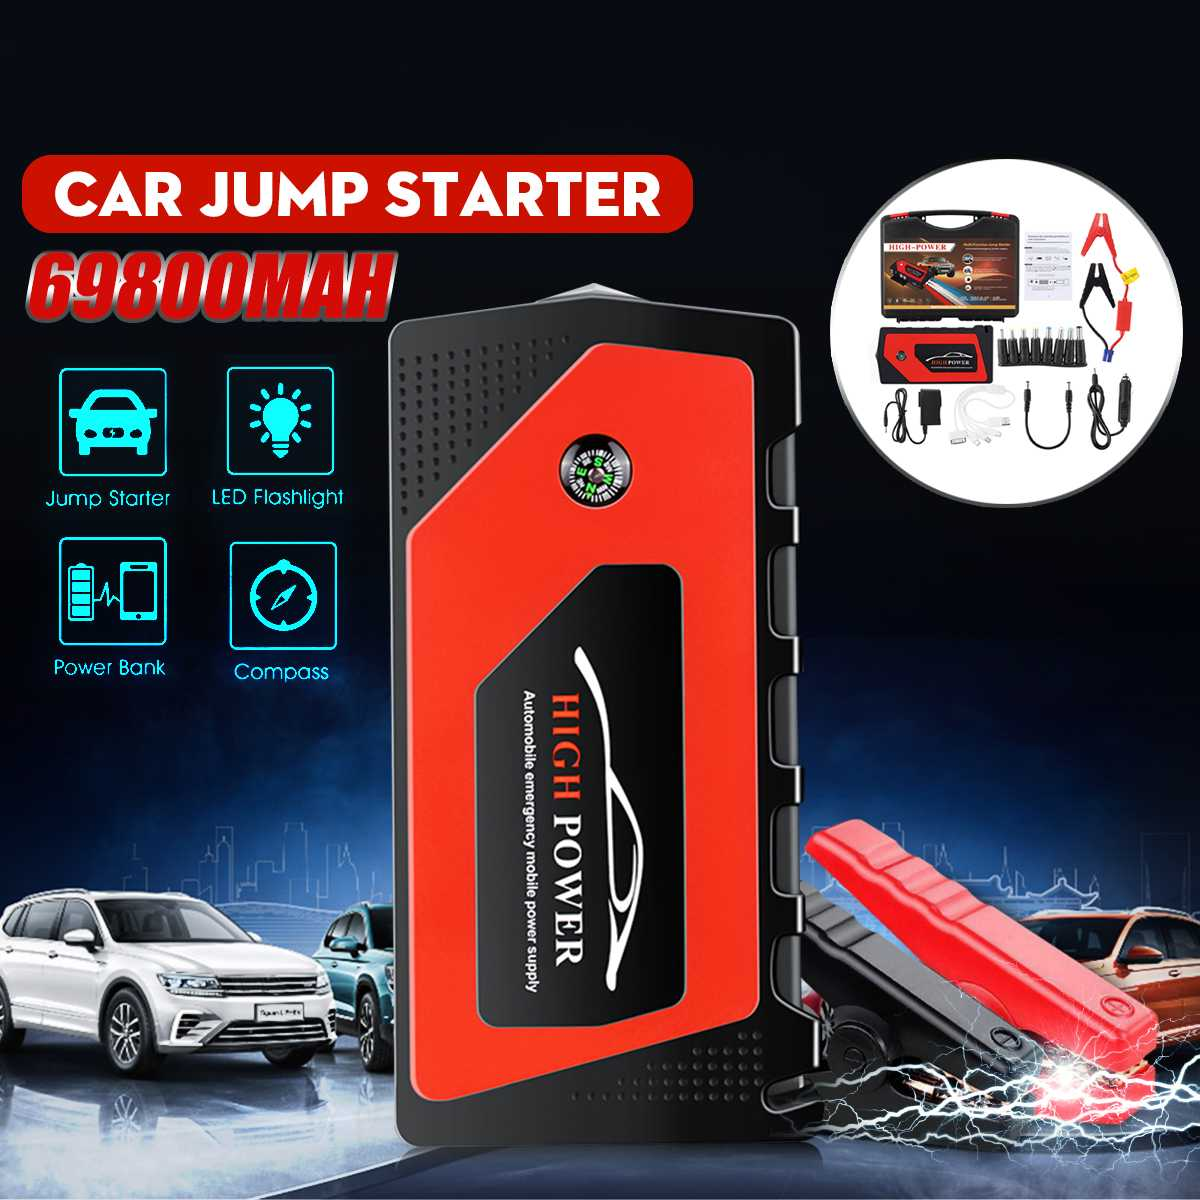 Portable Car Jump Starter 69800mAh 12V Car Jump Starter Booster Battery Charger USB Charger Emergency Power Bank Starting Device